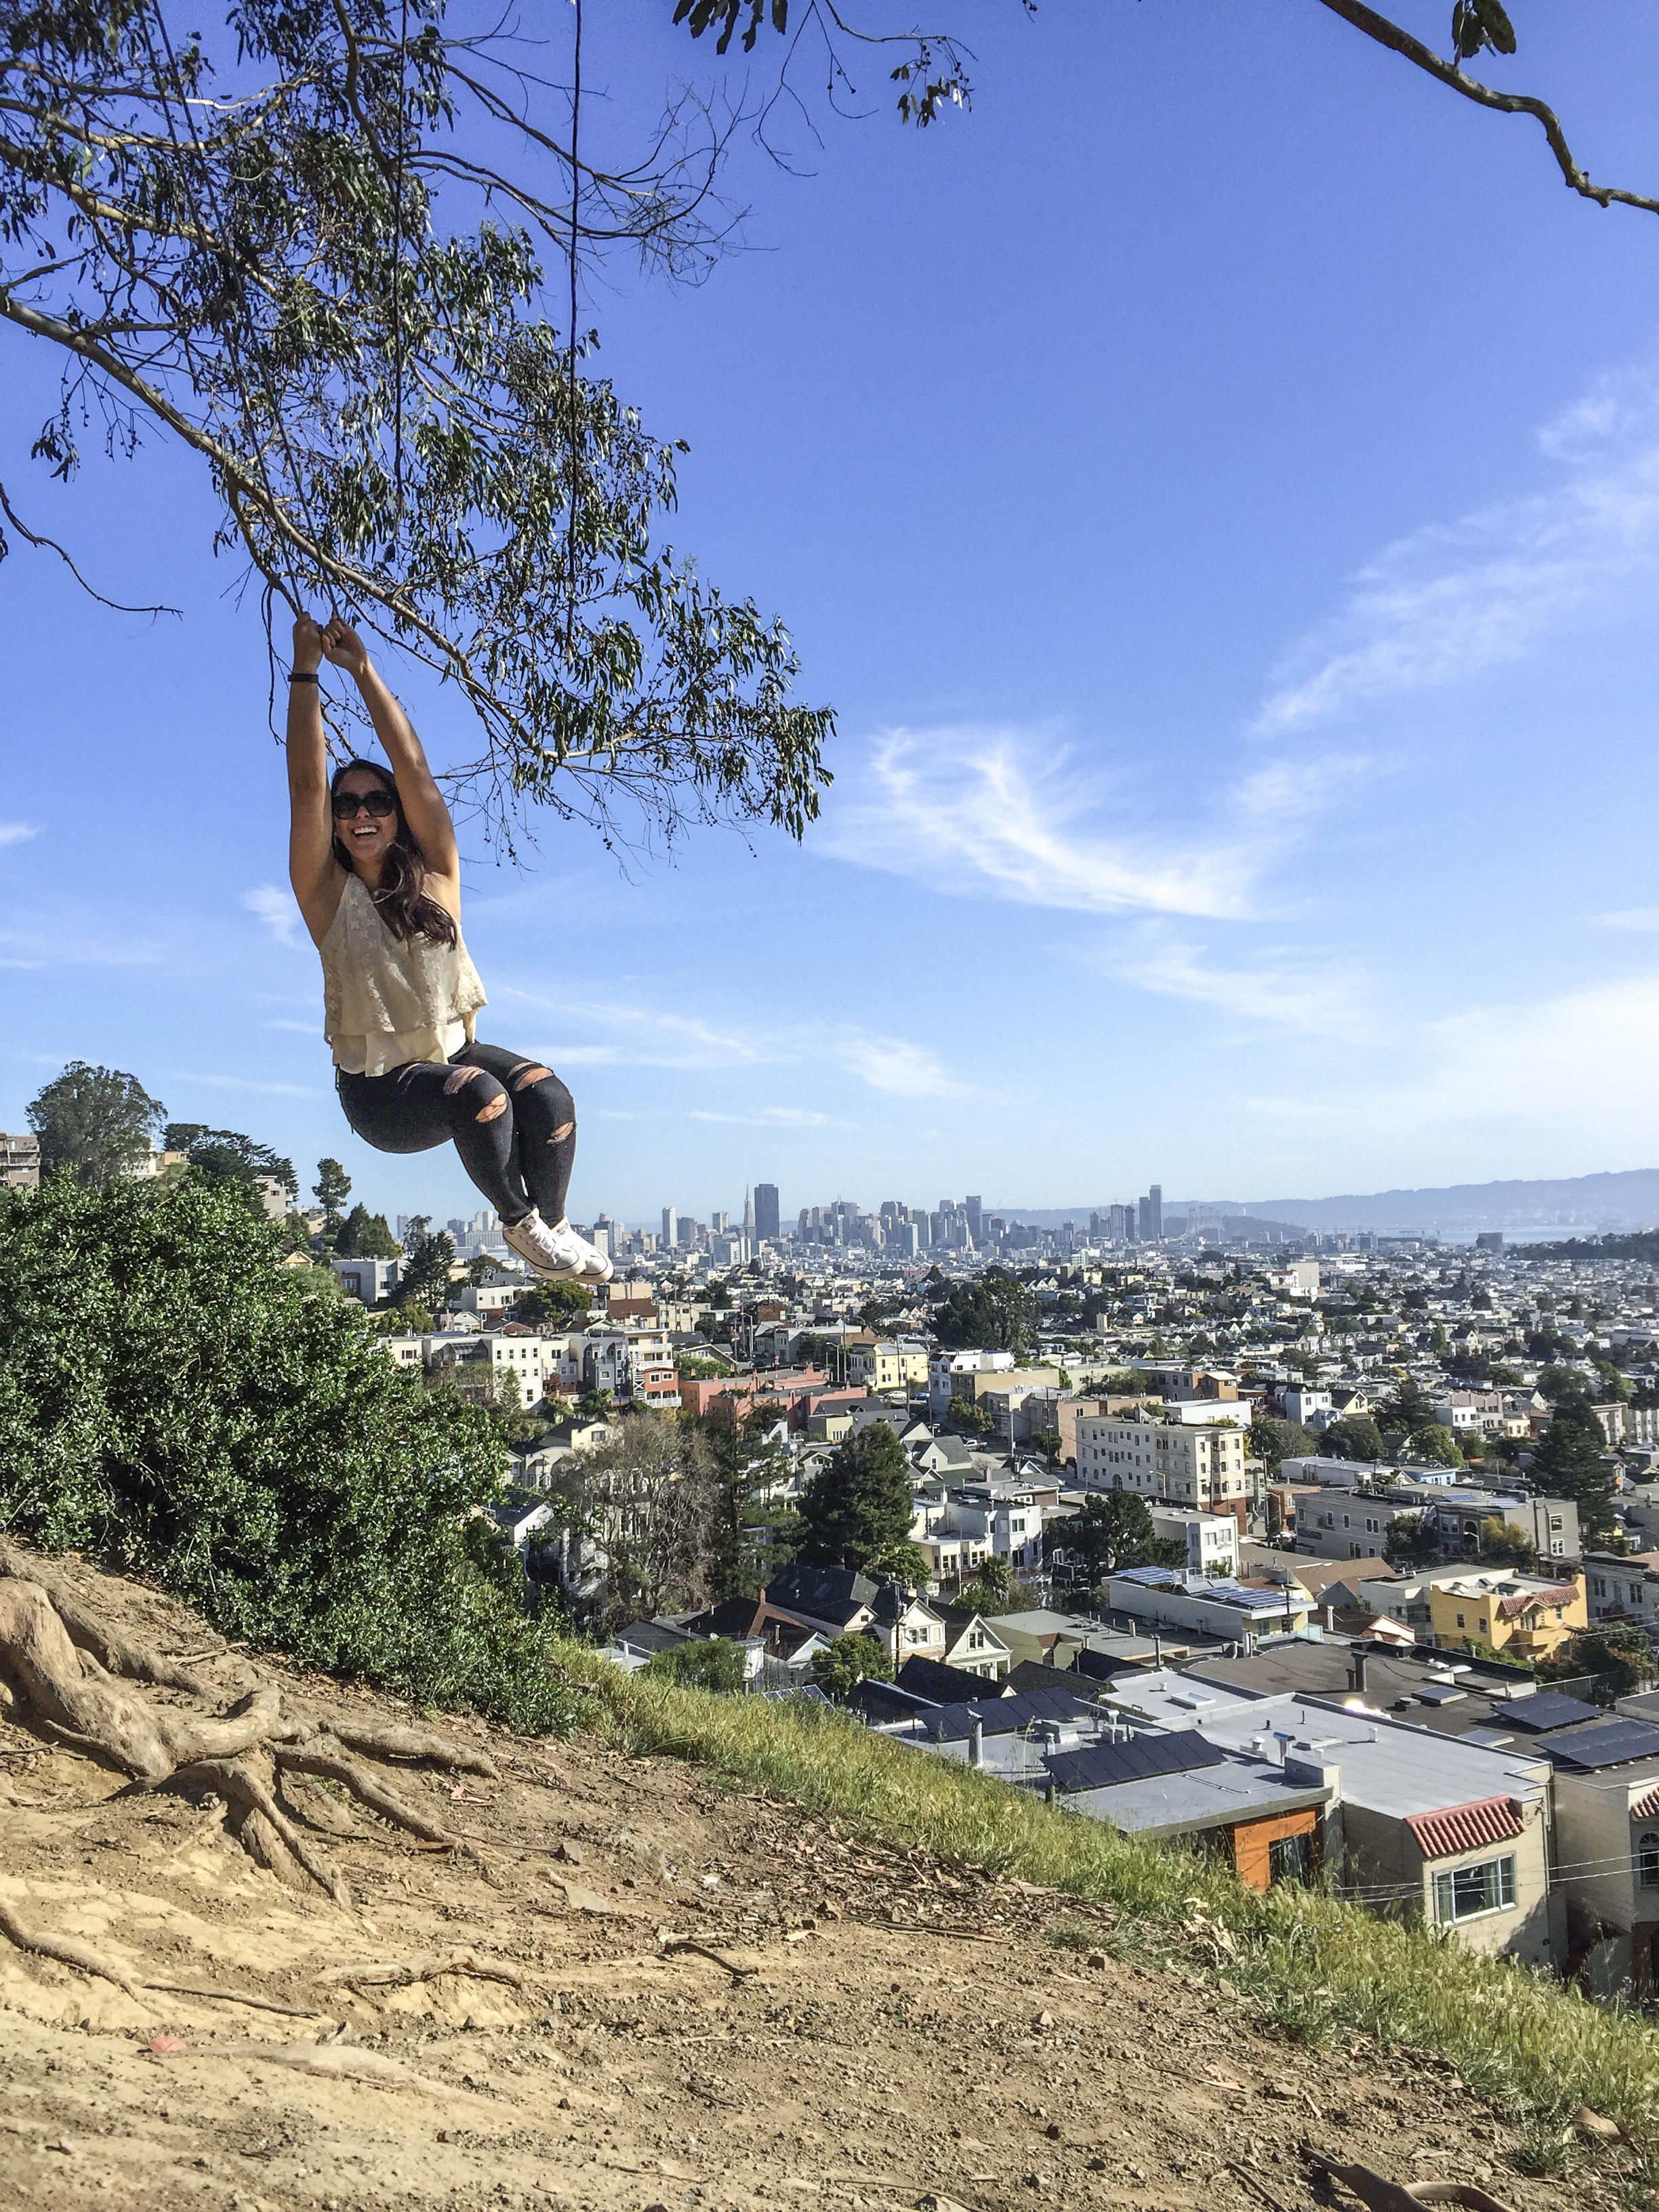 Billy Goat Hill Park Swing San Francisco California